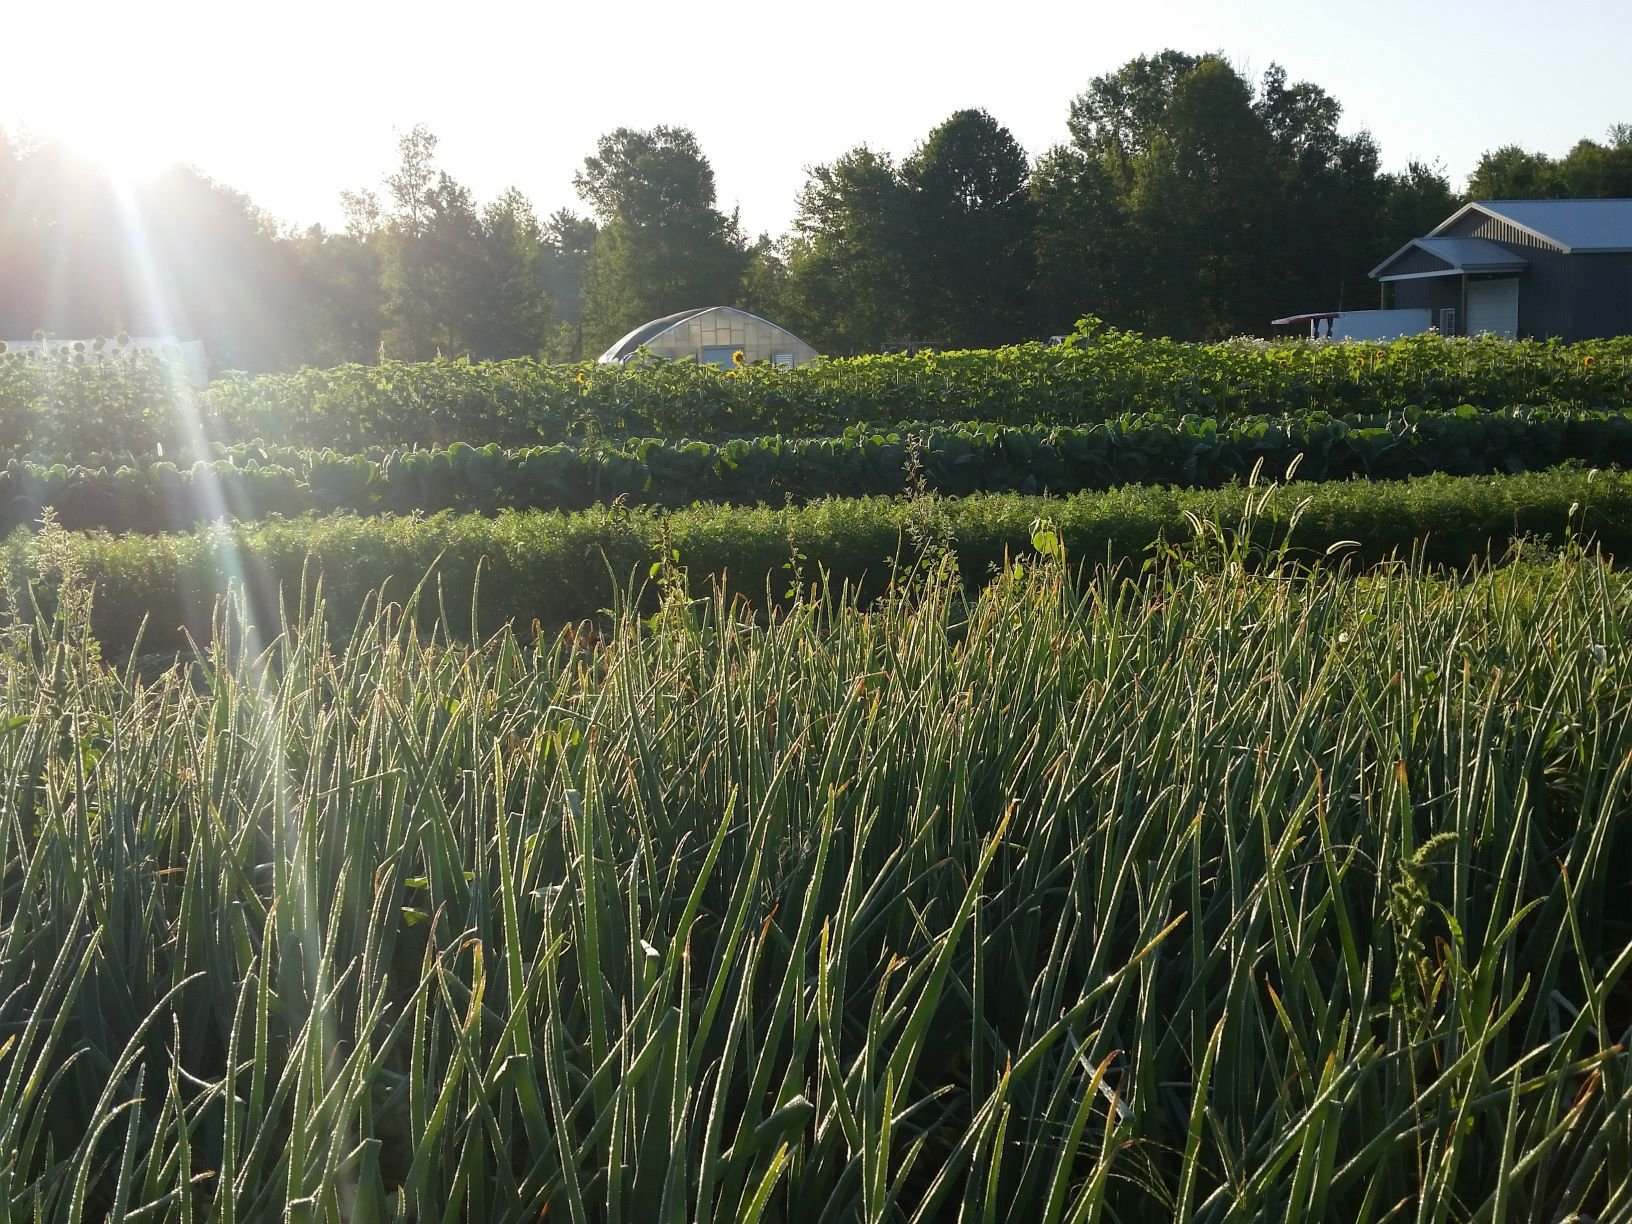 Previous Happening: Farm Happenings for August 29 & 30, 2019